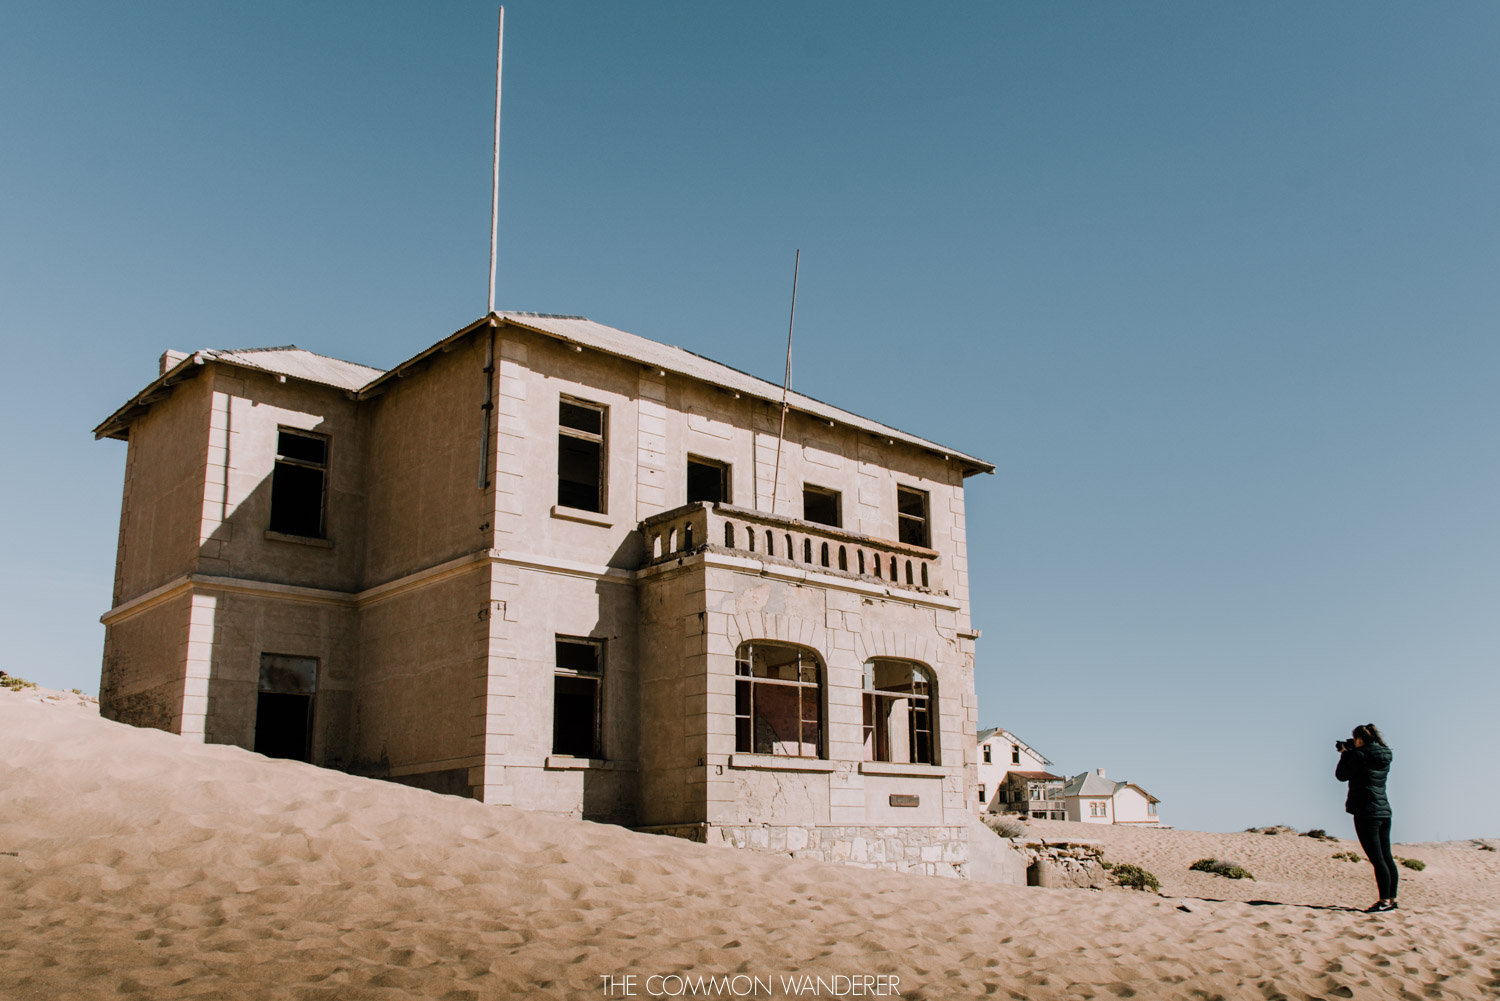 A woman takes a photo in Kolmanskop town, Namibia - the Common Wanderer